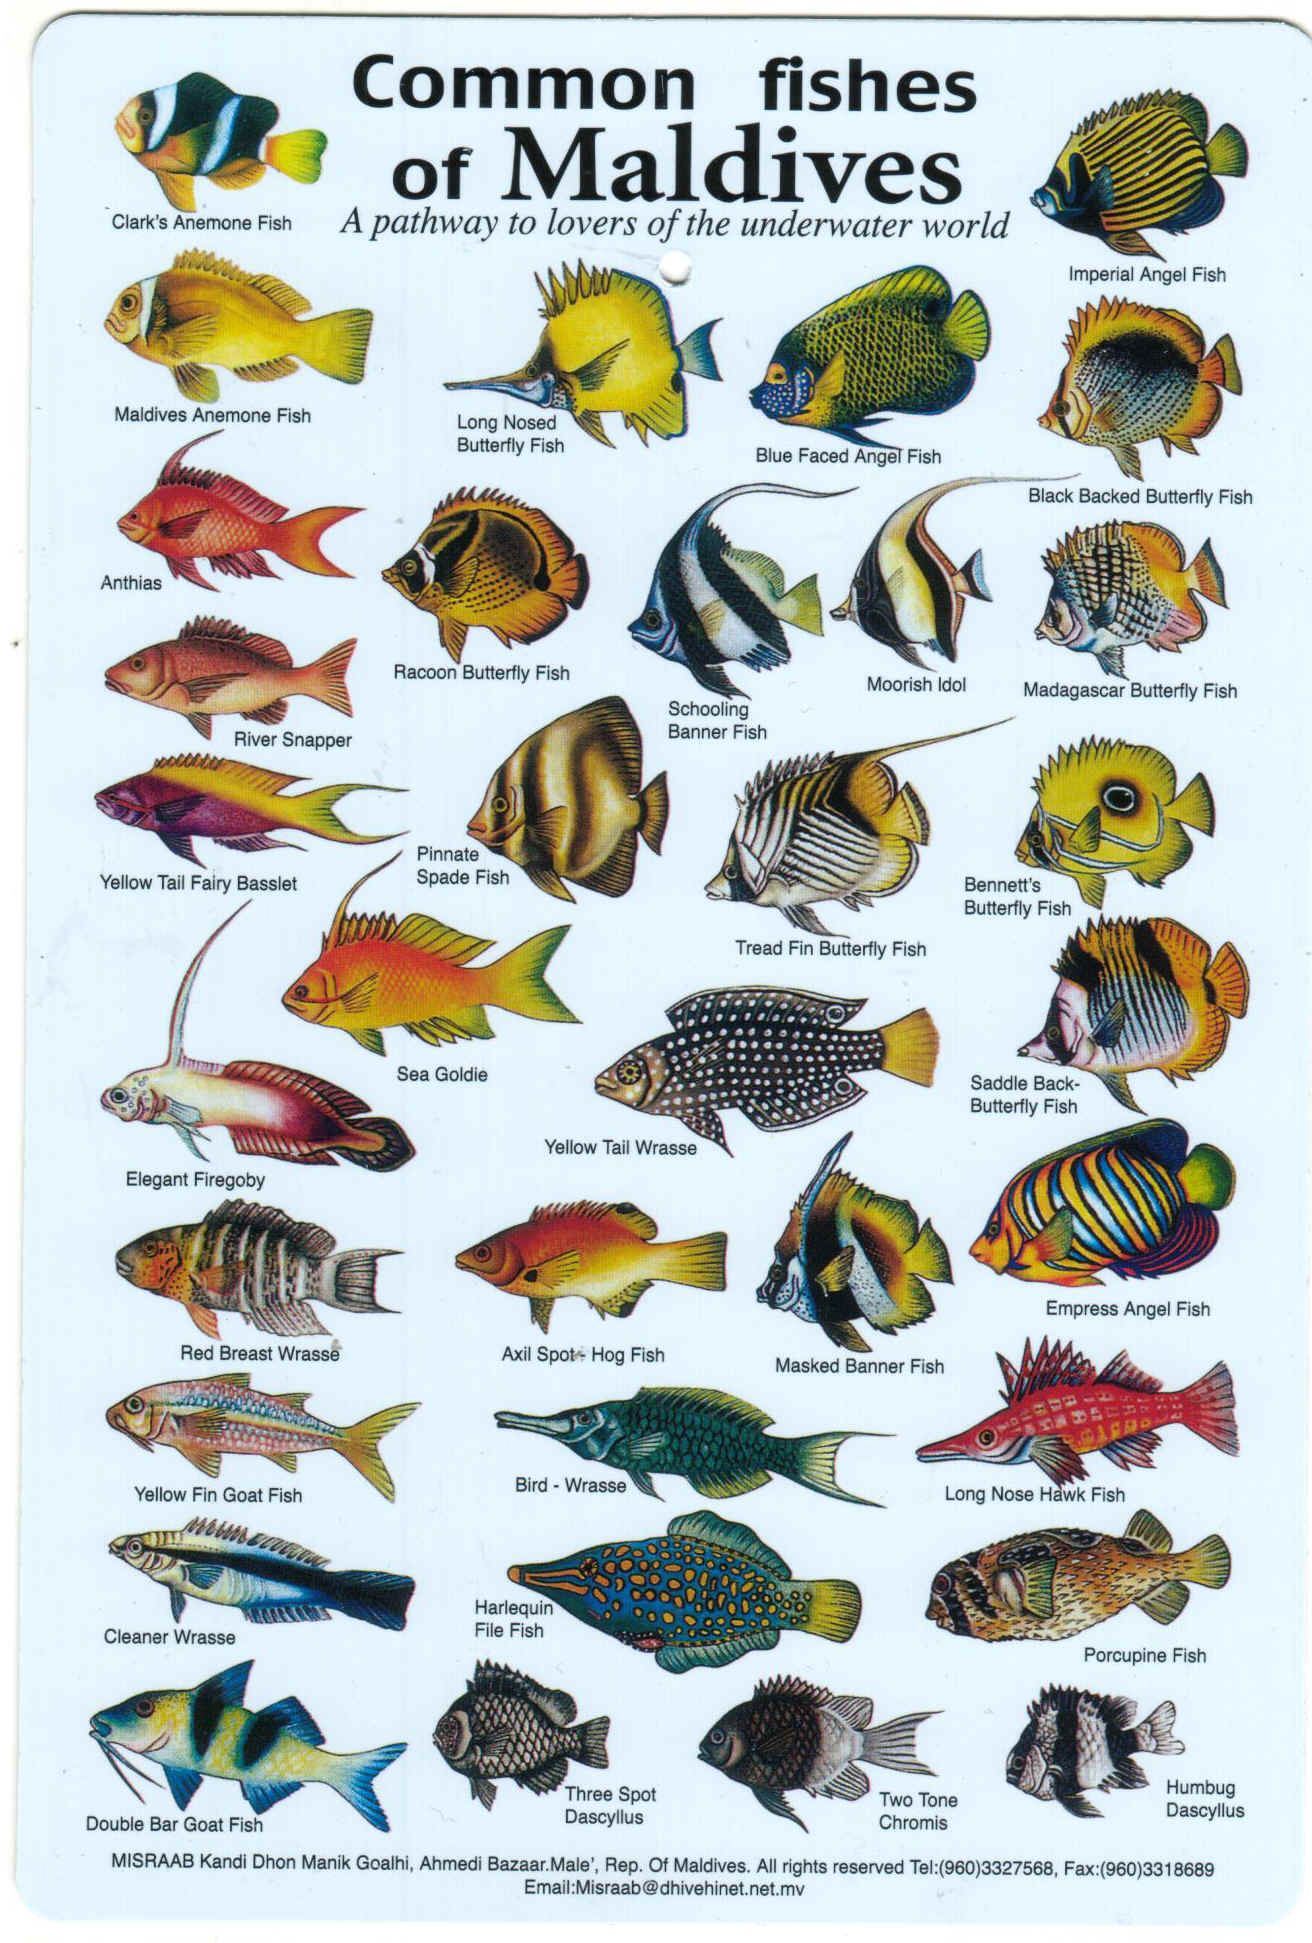 Fishes of the maldives identification chart water for Common freshwater aquarium fish